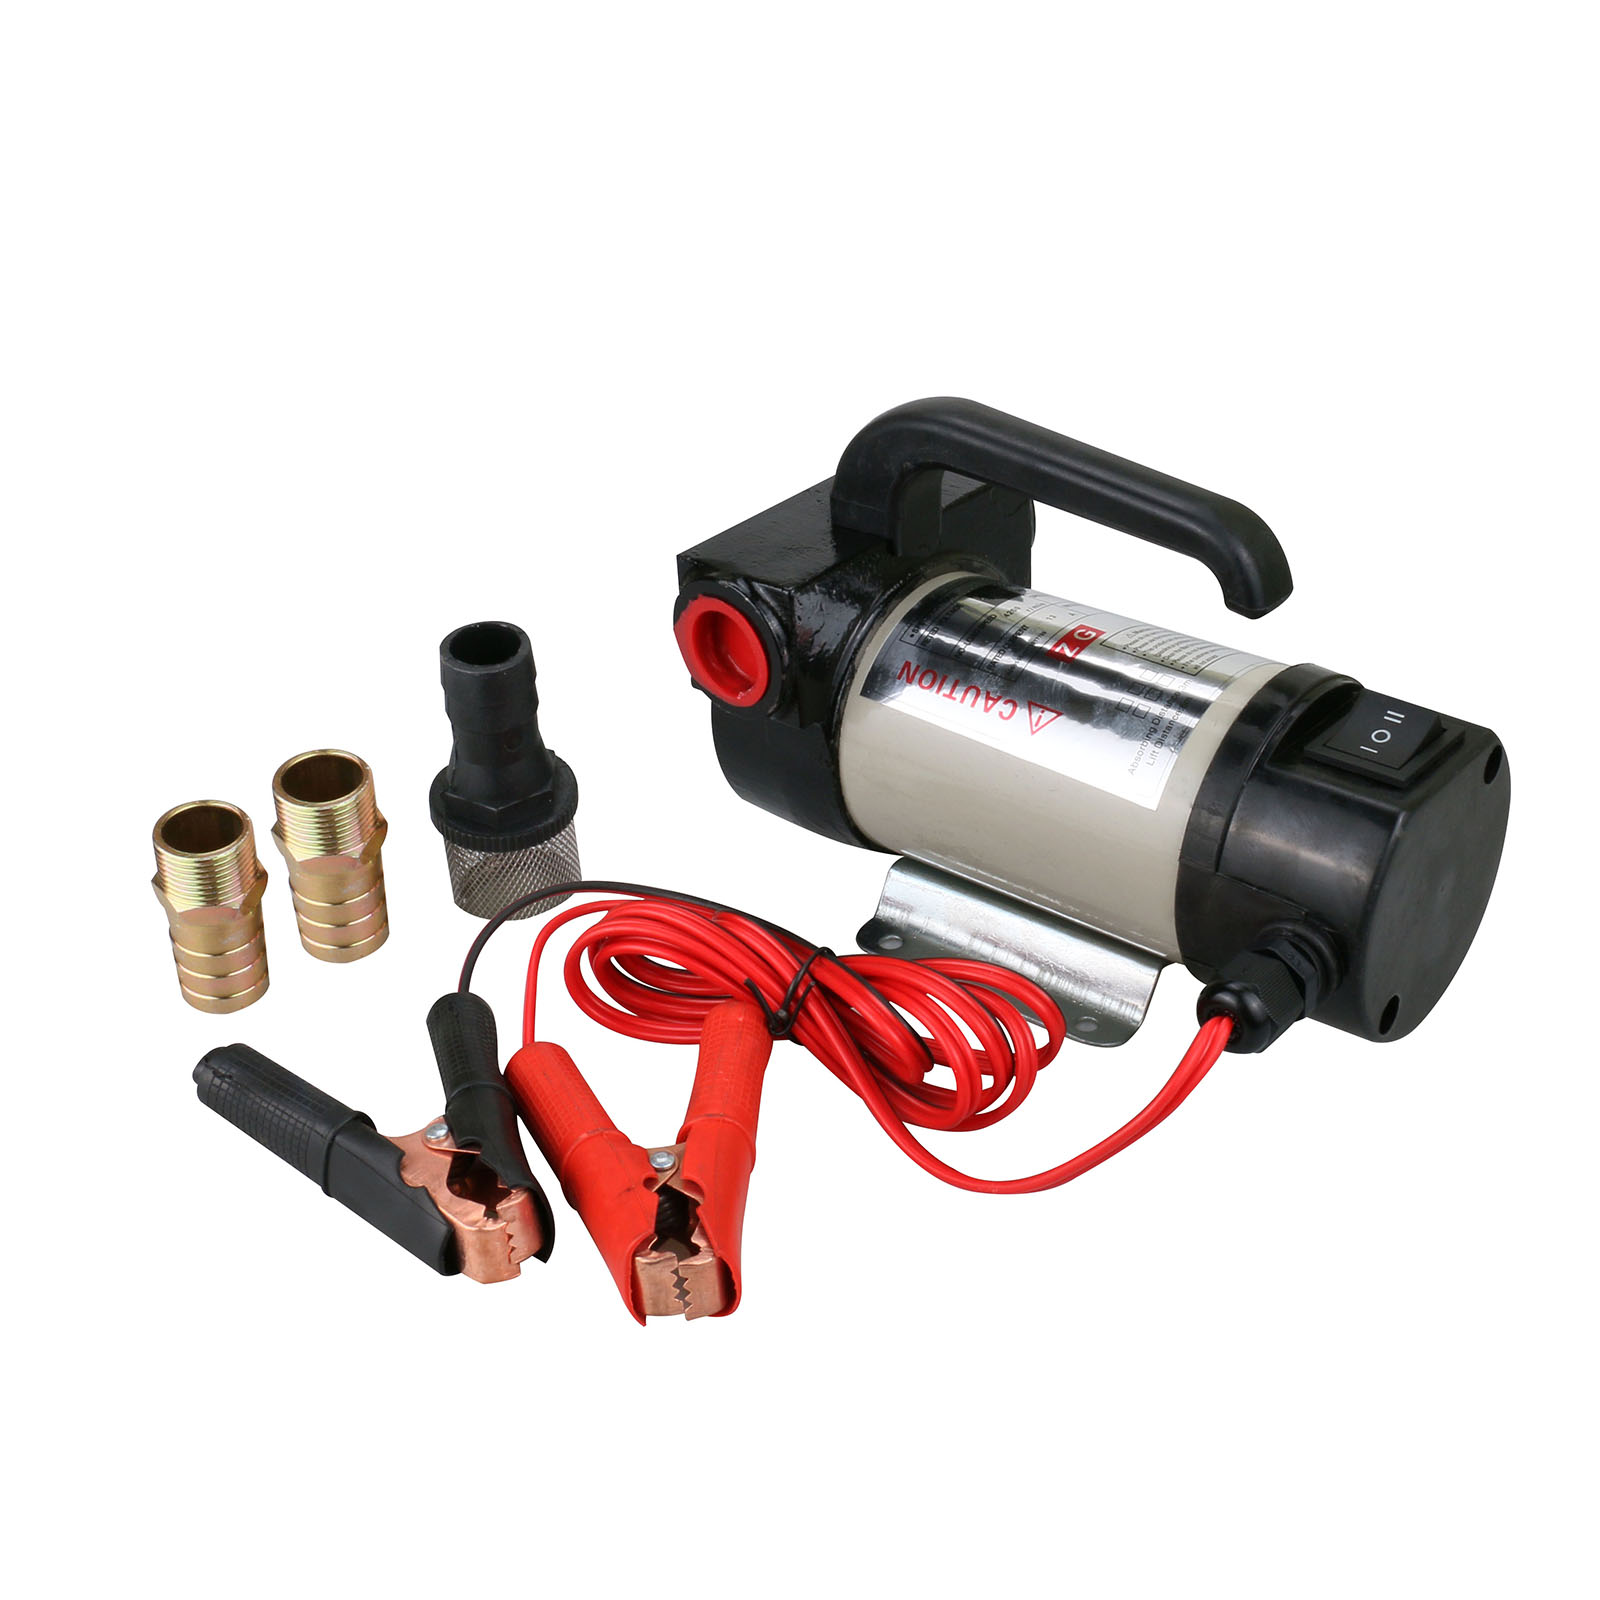 Diesel Oil Fuel Transfer Pump Electric Tool Car Direct Current Pump Kit Alligator Clip 50L/min 24V DC For Auto 50l min ac dc electric automatic fuel transfer pump for pumping oil diesel kerosene water small auto refueling pump